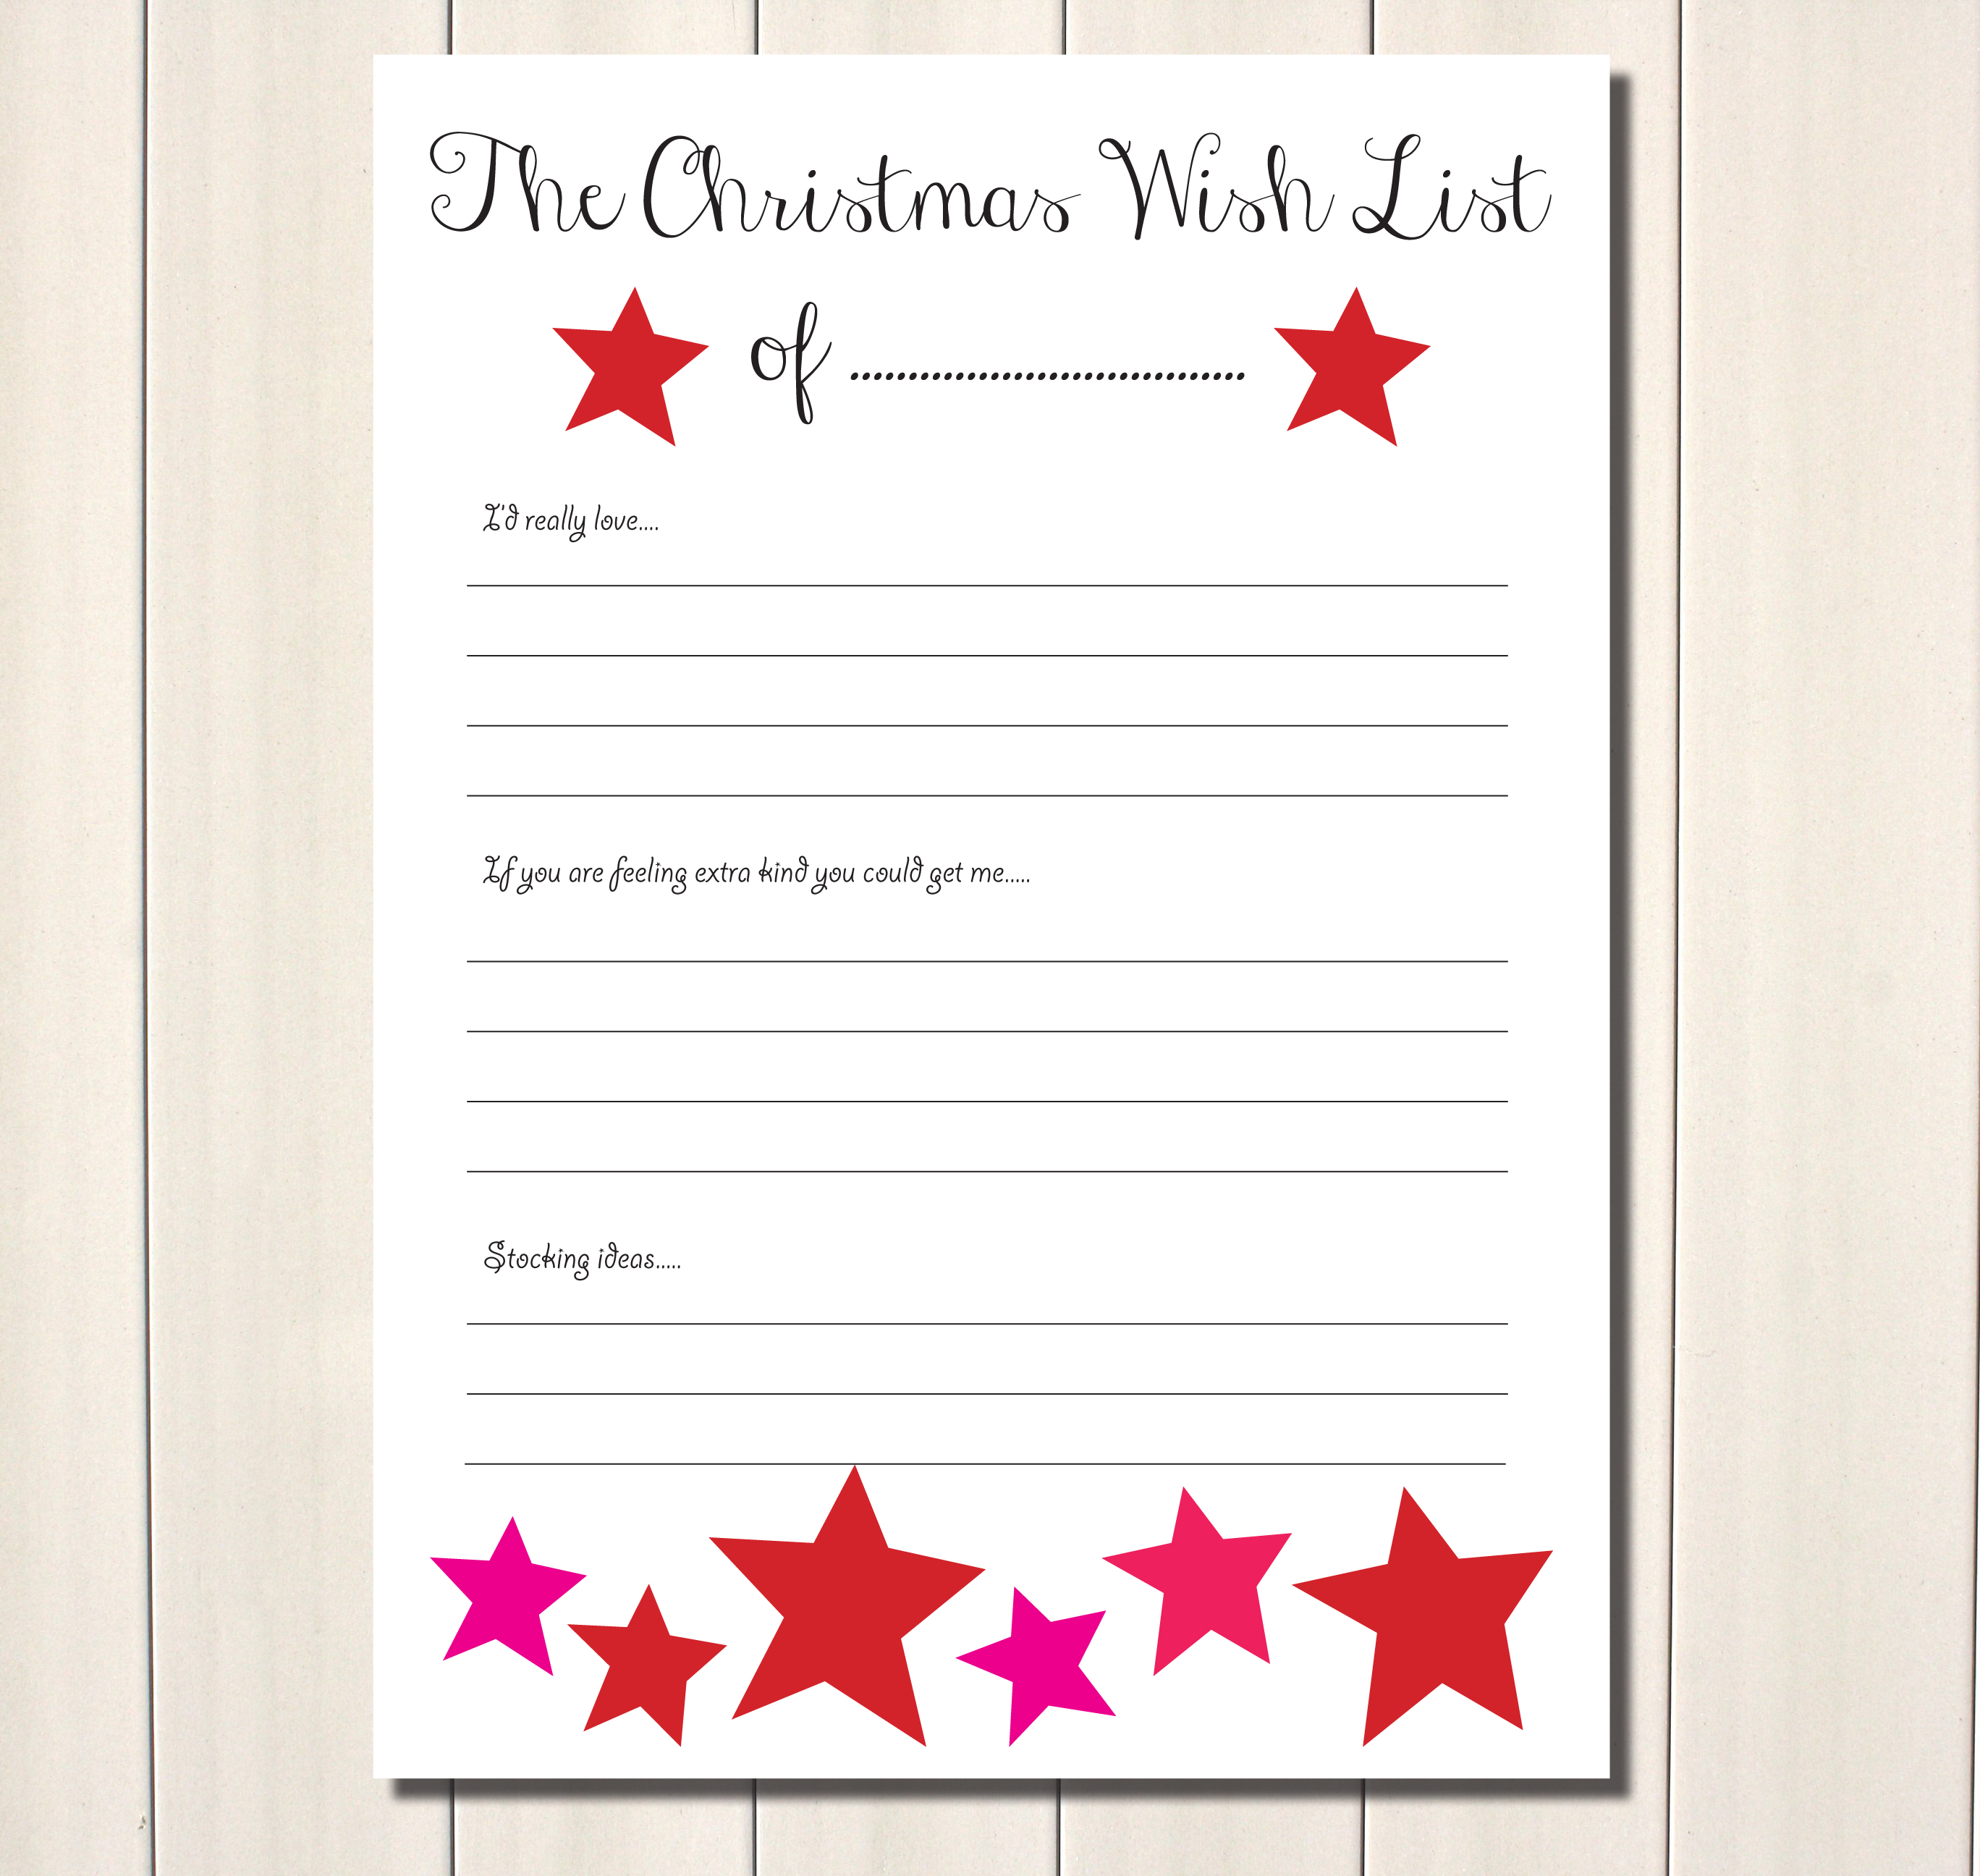 Christmas Printable Images Gallery Category Page 16